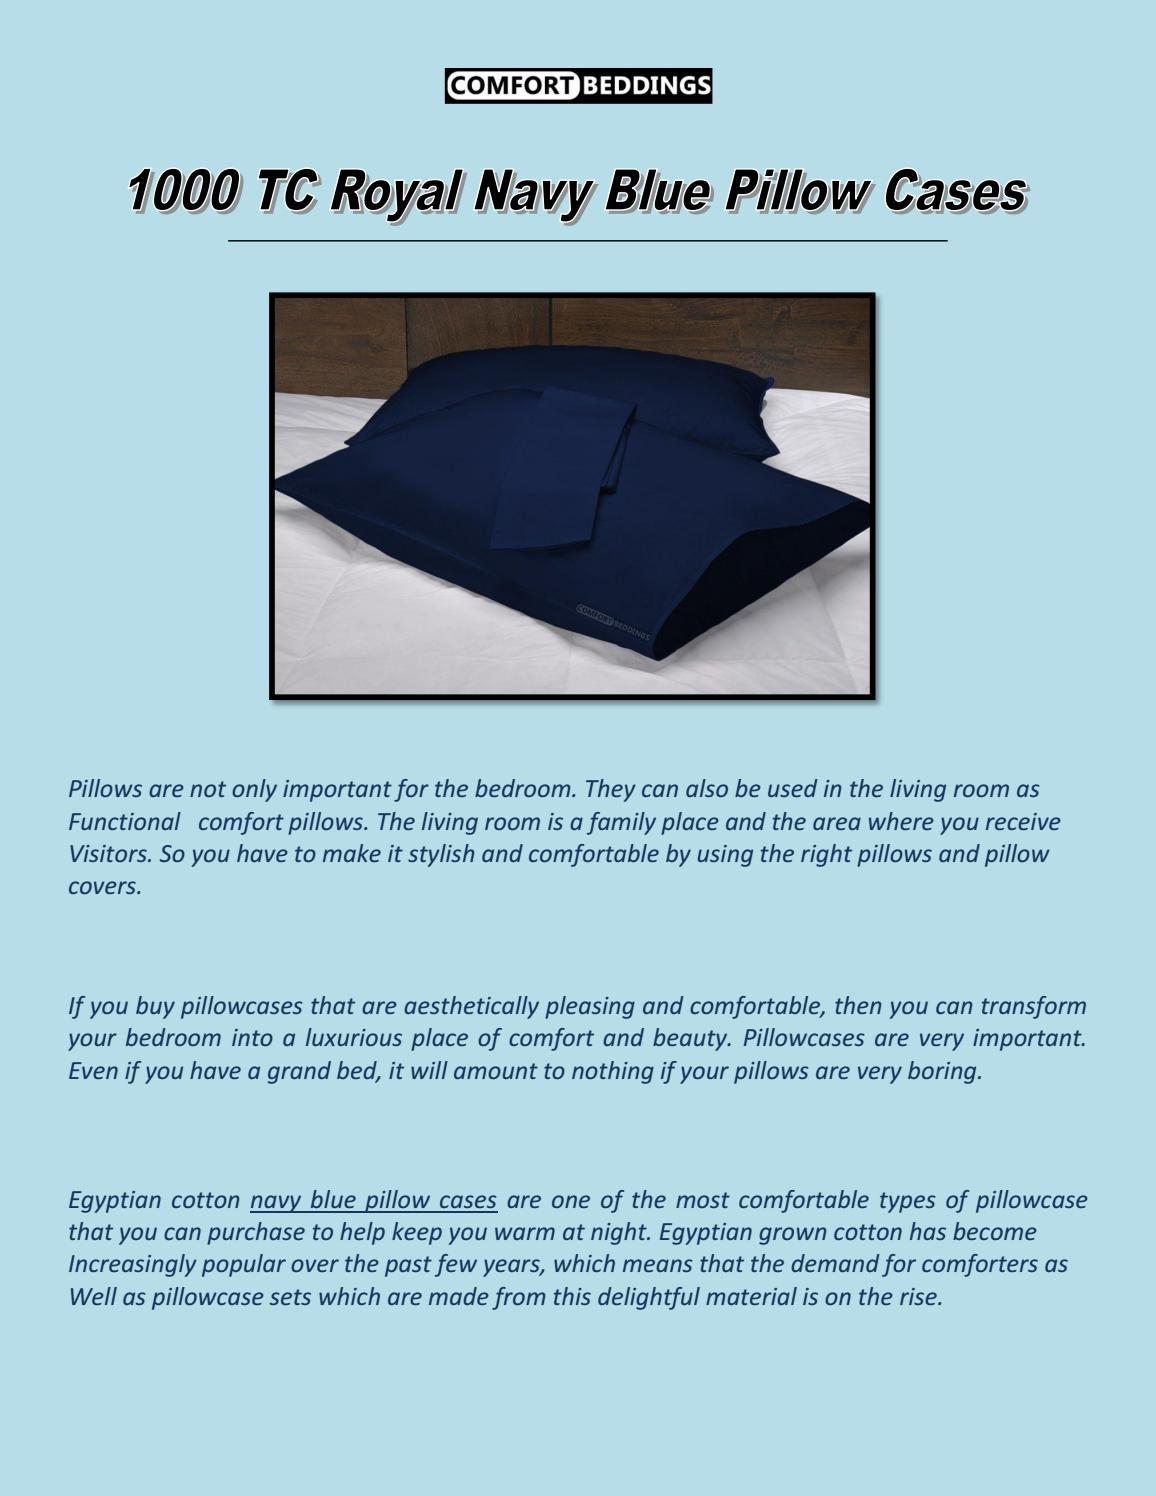 1000 tc royal navy blue pillow cases by